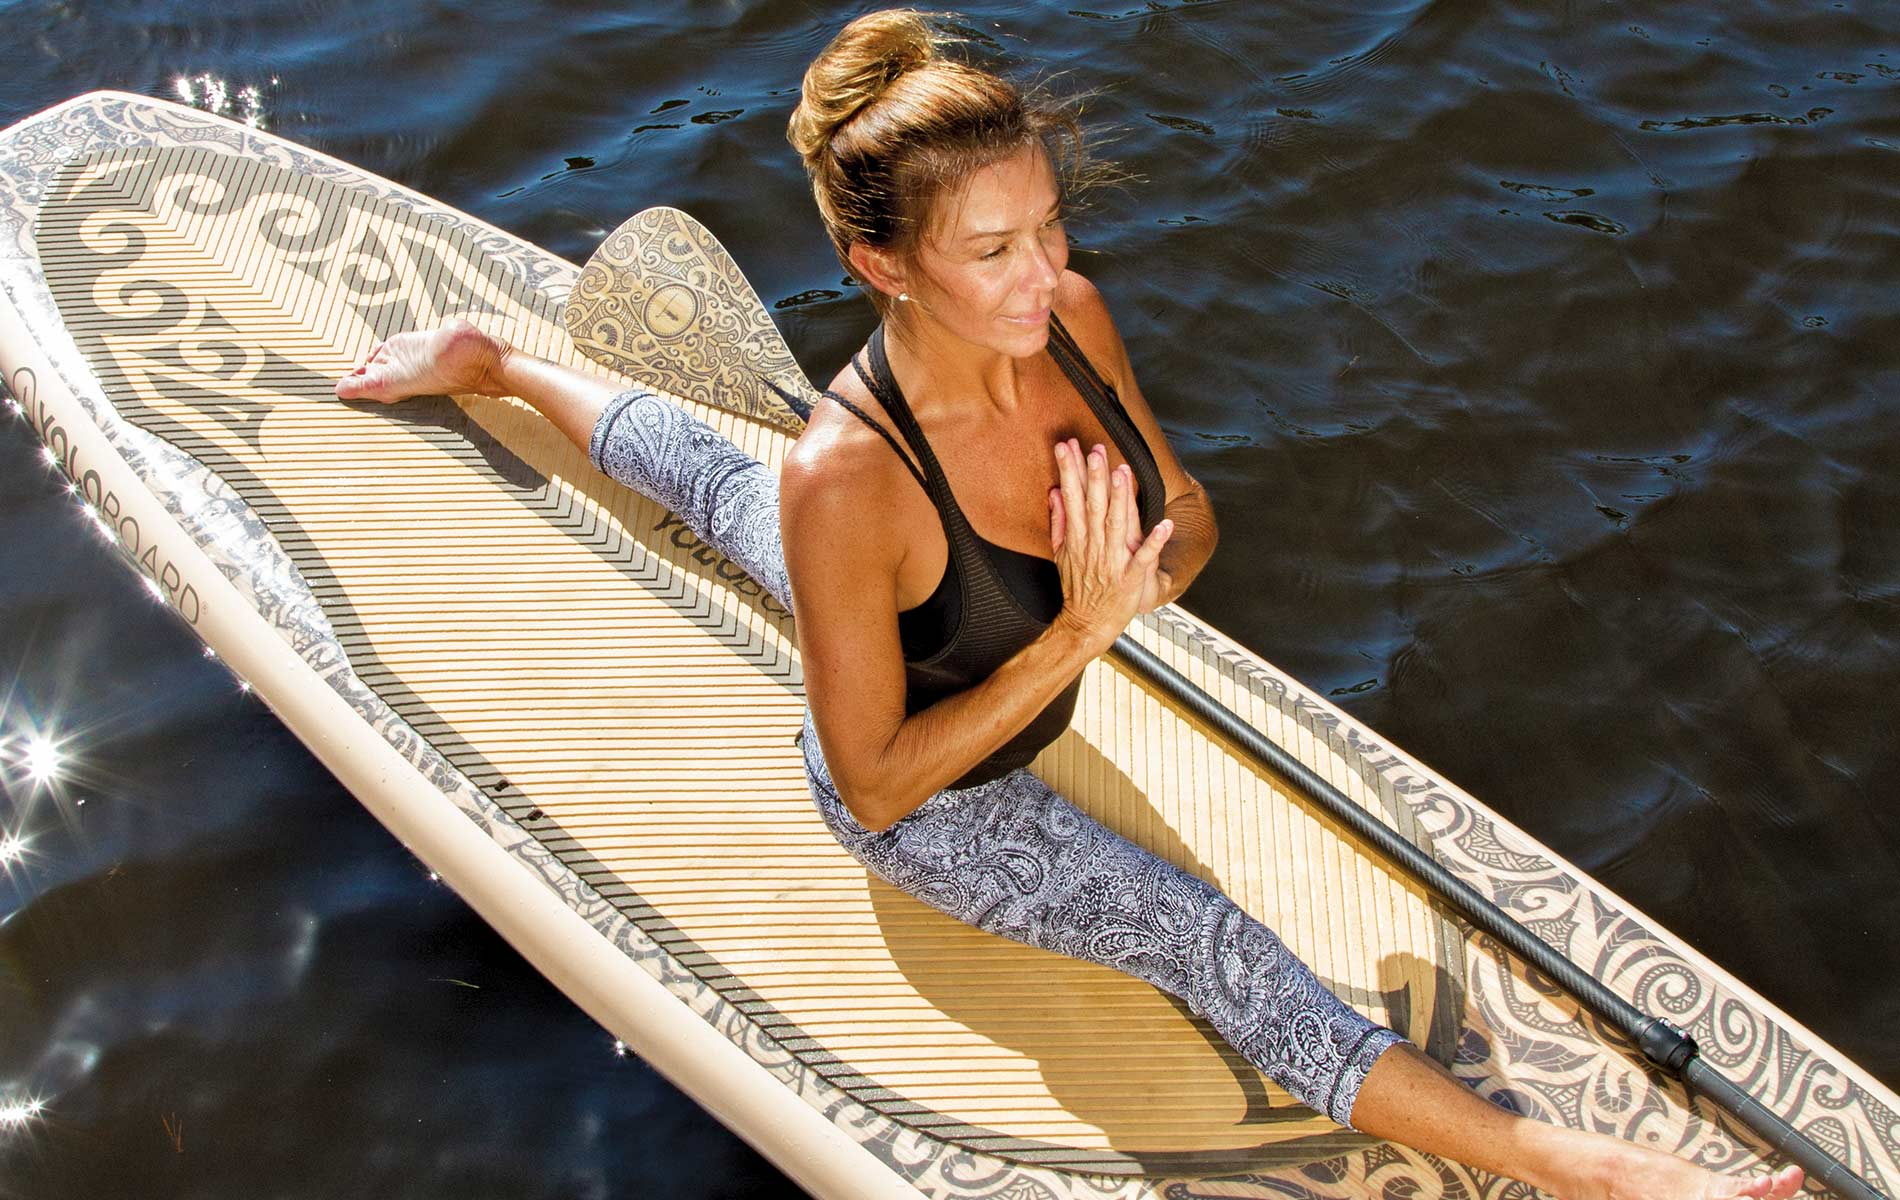 Woman doing paddleboard yoga in Lululemon workout clothing. Photo by Dawn Chapman Whitty.